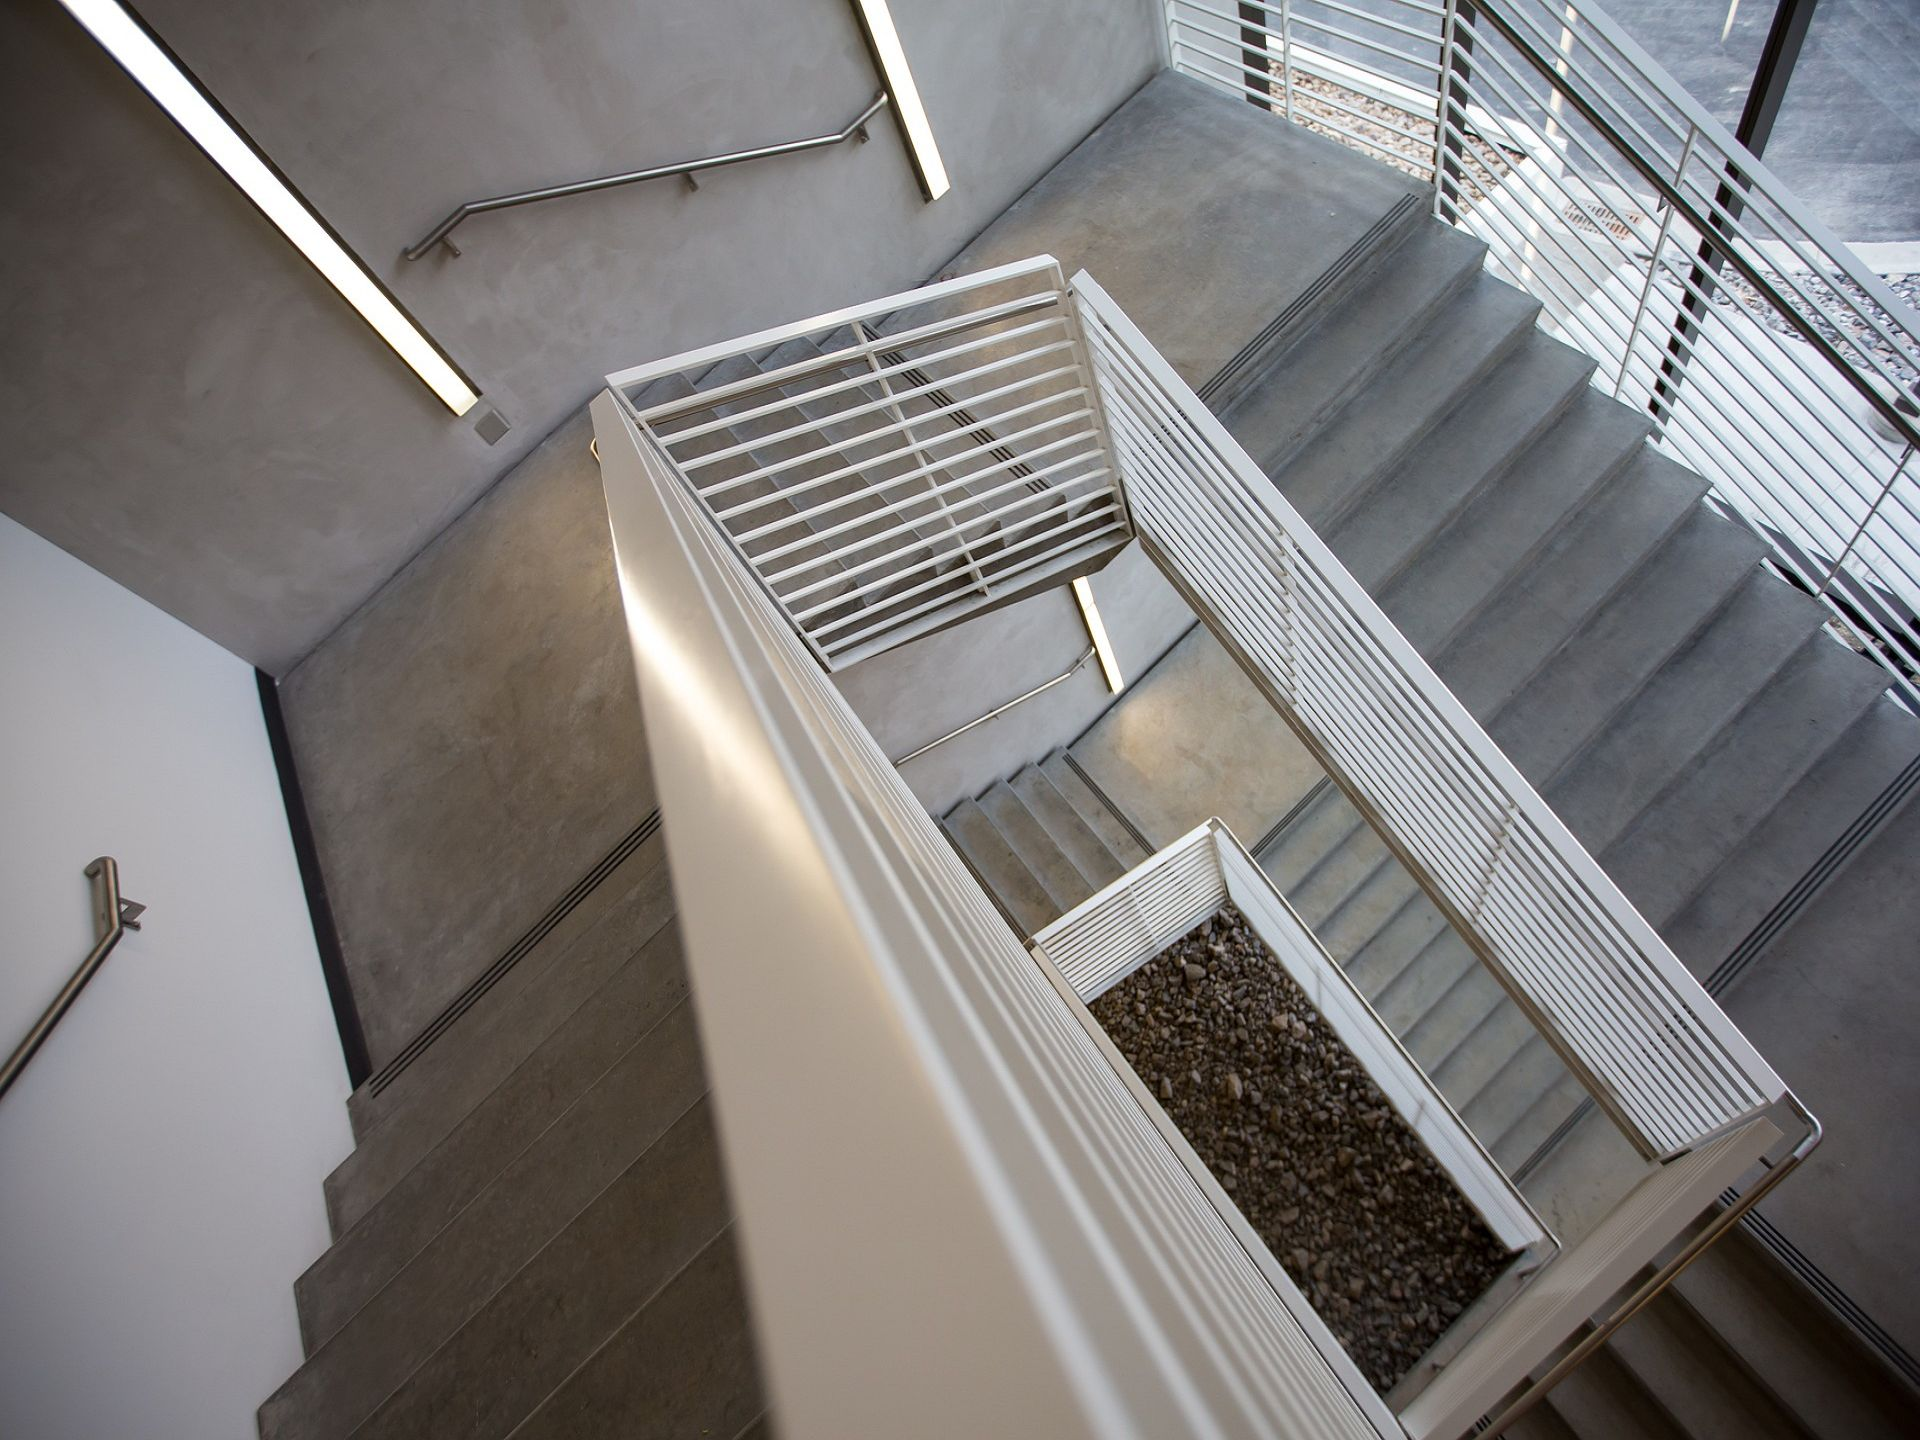 k-staircase-802032_1920